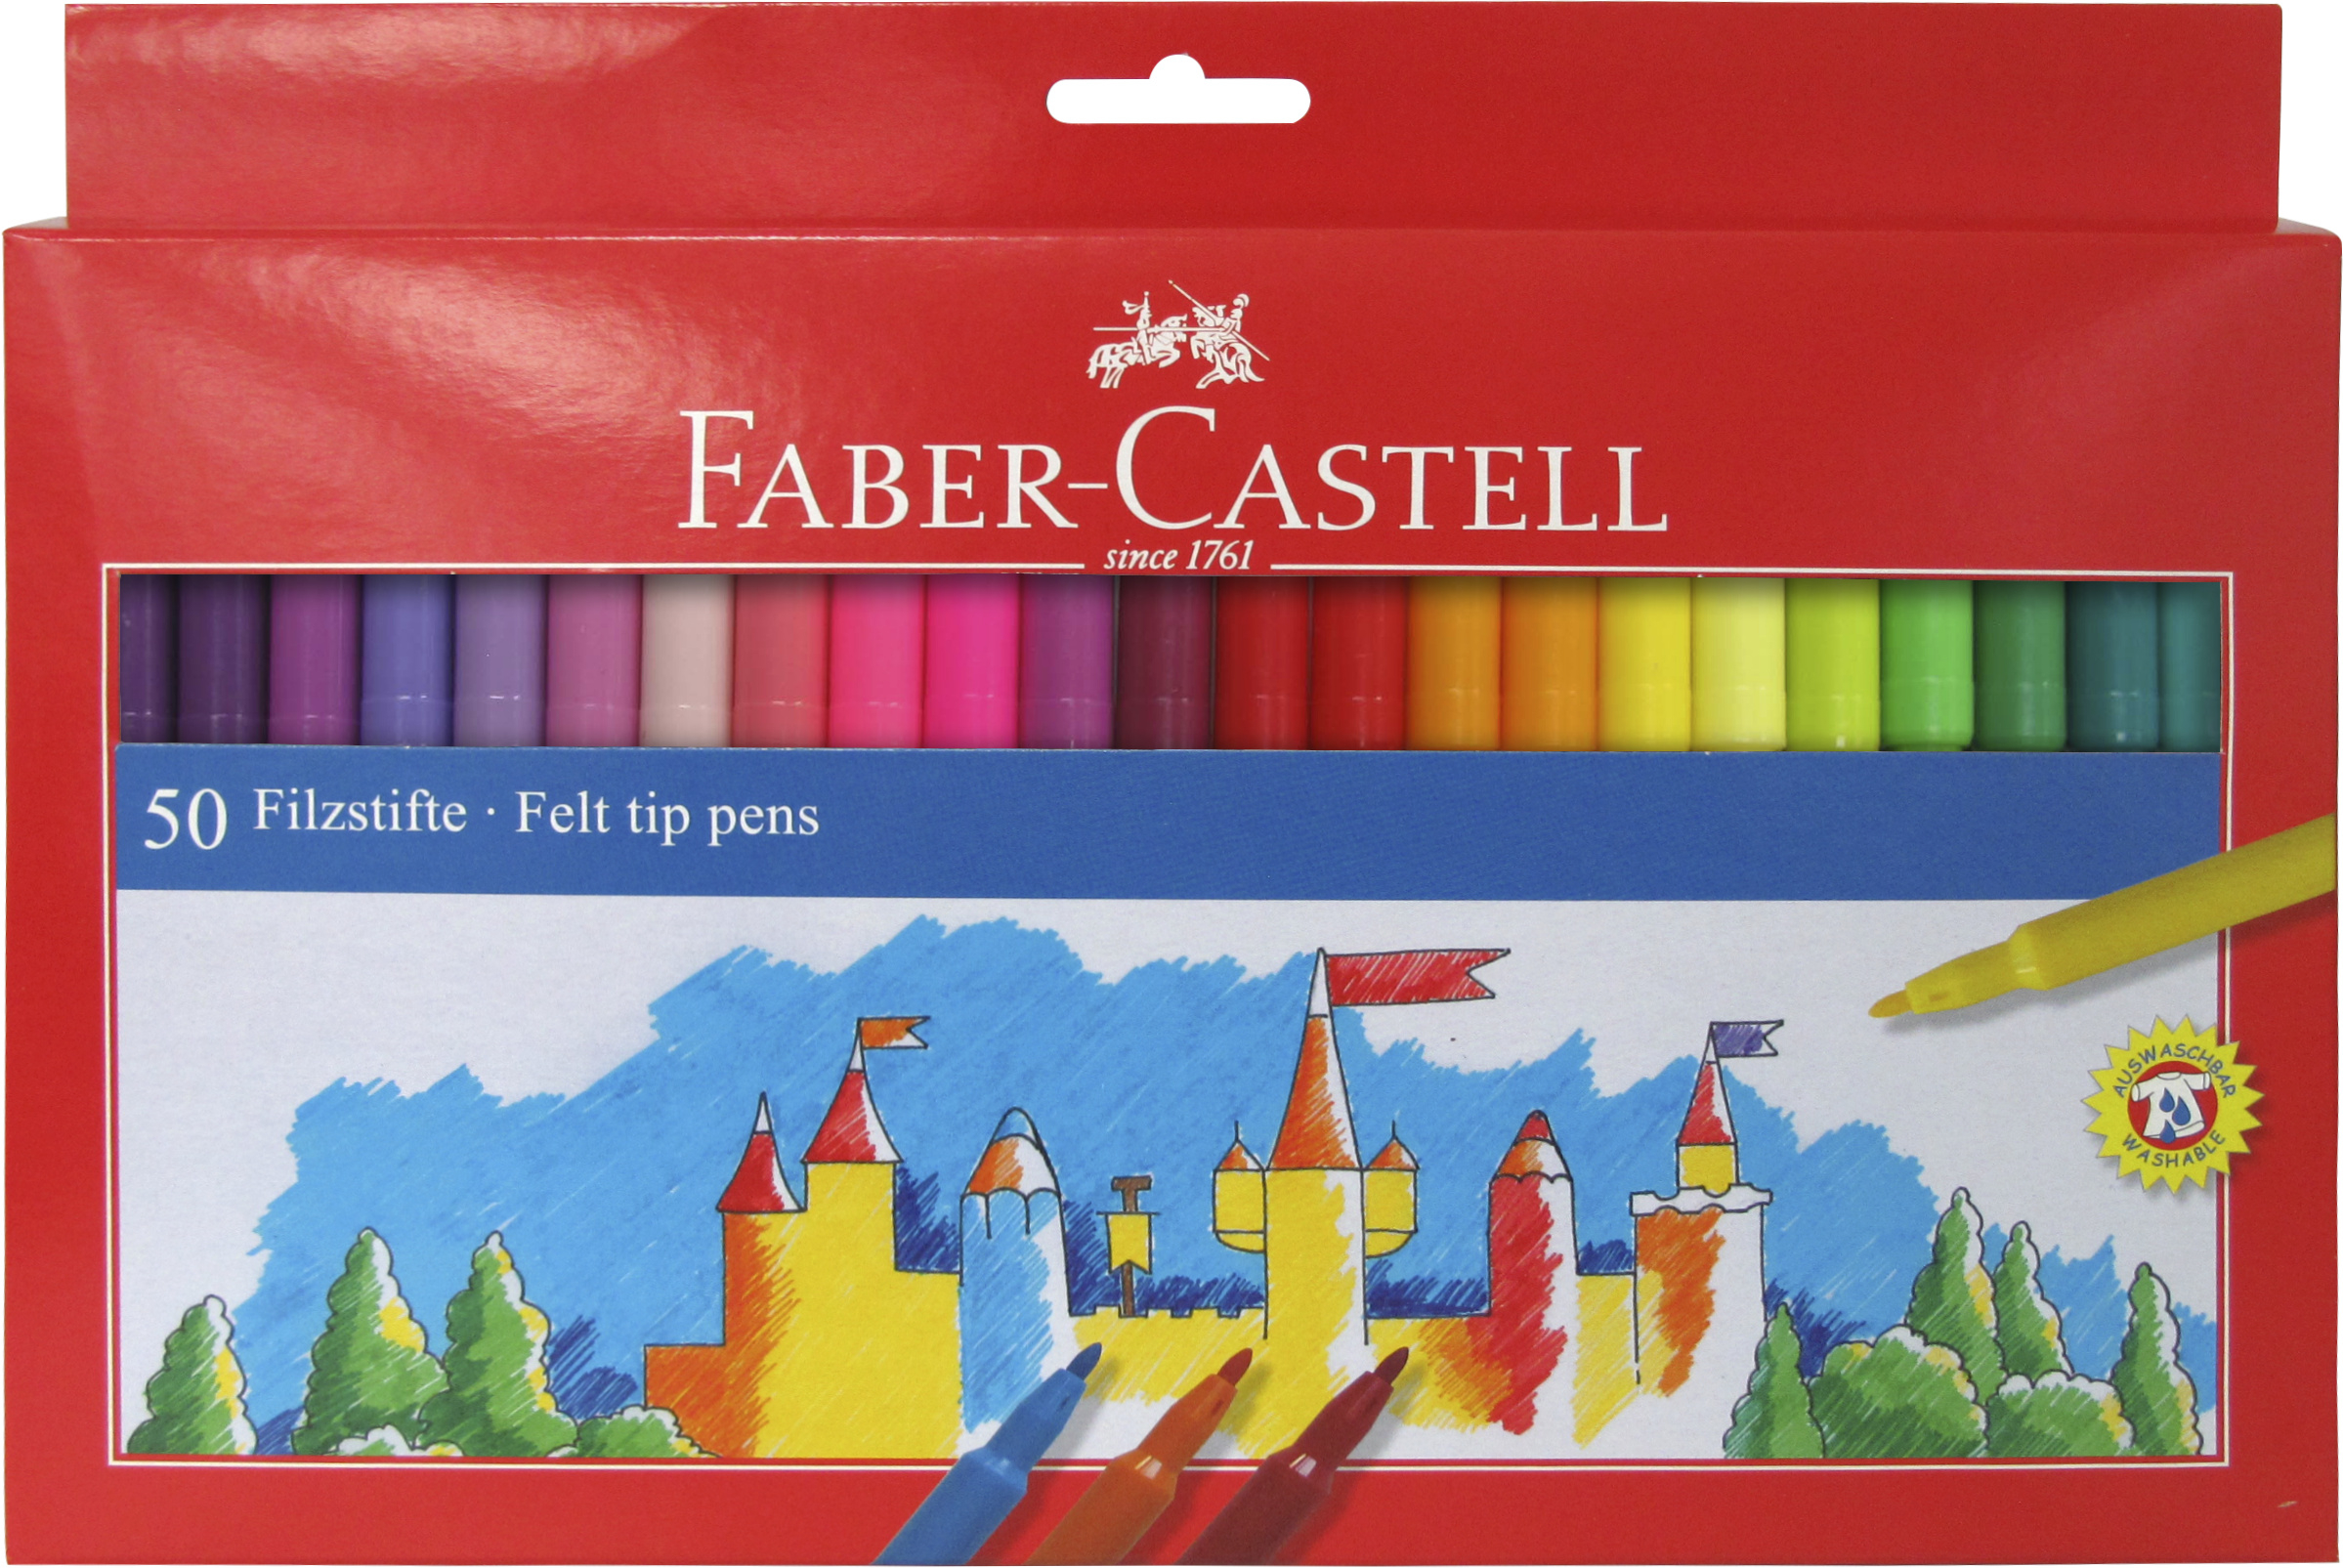 FABER CASTELL 50 FIBRE TIPPED PENS 554250